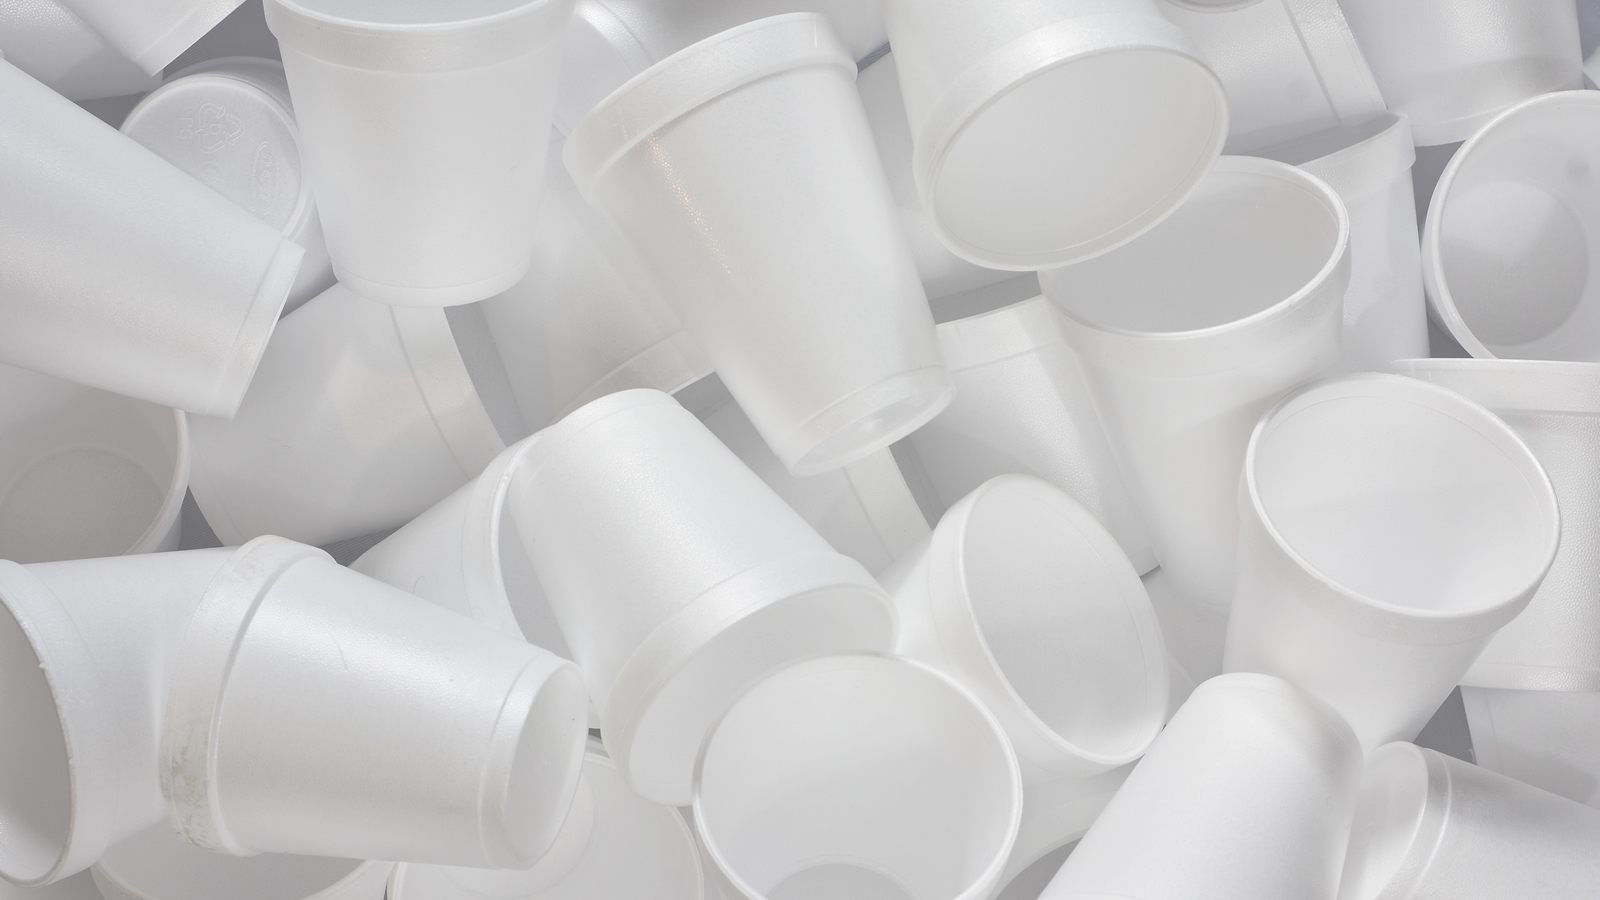 <h4>We throw away millions of foam cups a year</h4><p>The U.S. Environmental Protection Agency estimates that we produce over three million tons of polystyrene every year, and Americans throw away an estimated 25 billion polystyrene cups every year, or about 82 cups per person.</p><em>Pam Walker via Shutterstock</em>